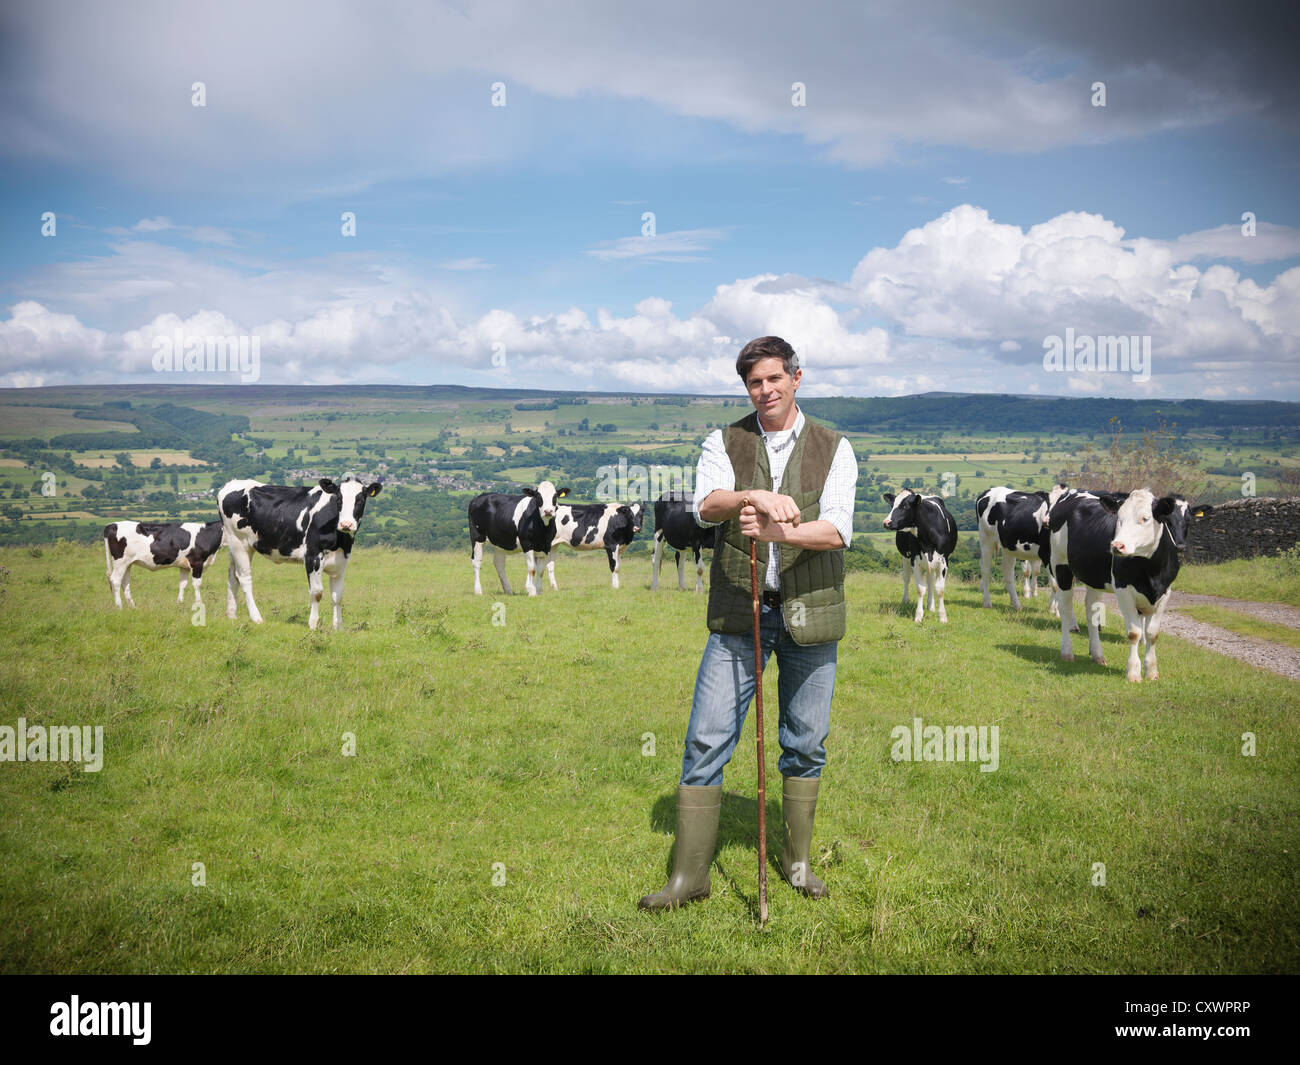 Farmer standing in field with cows - Stock Image